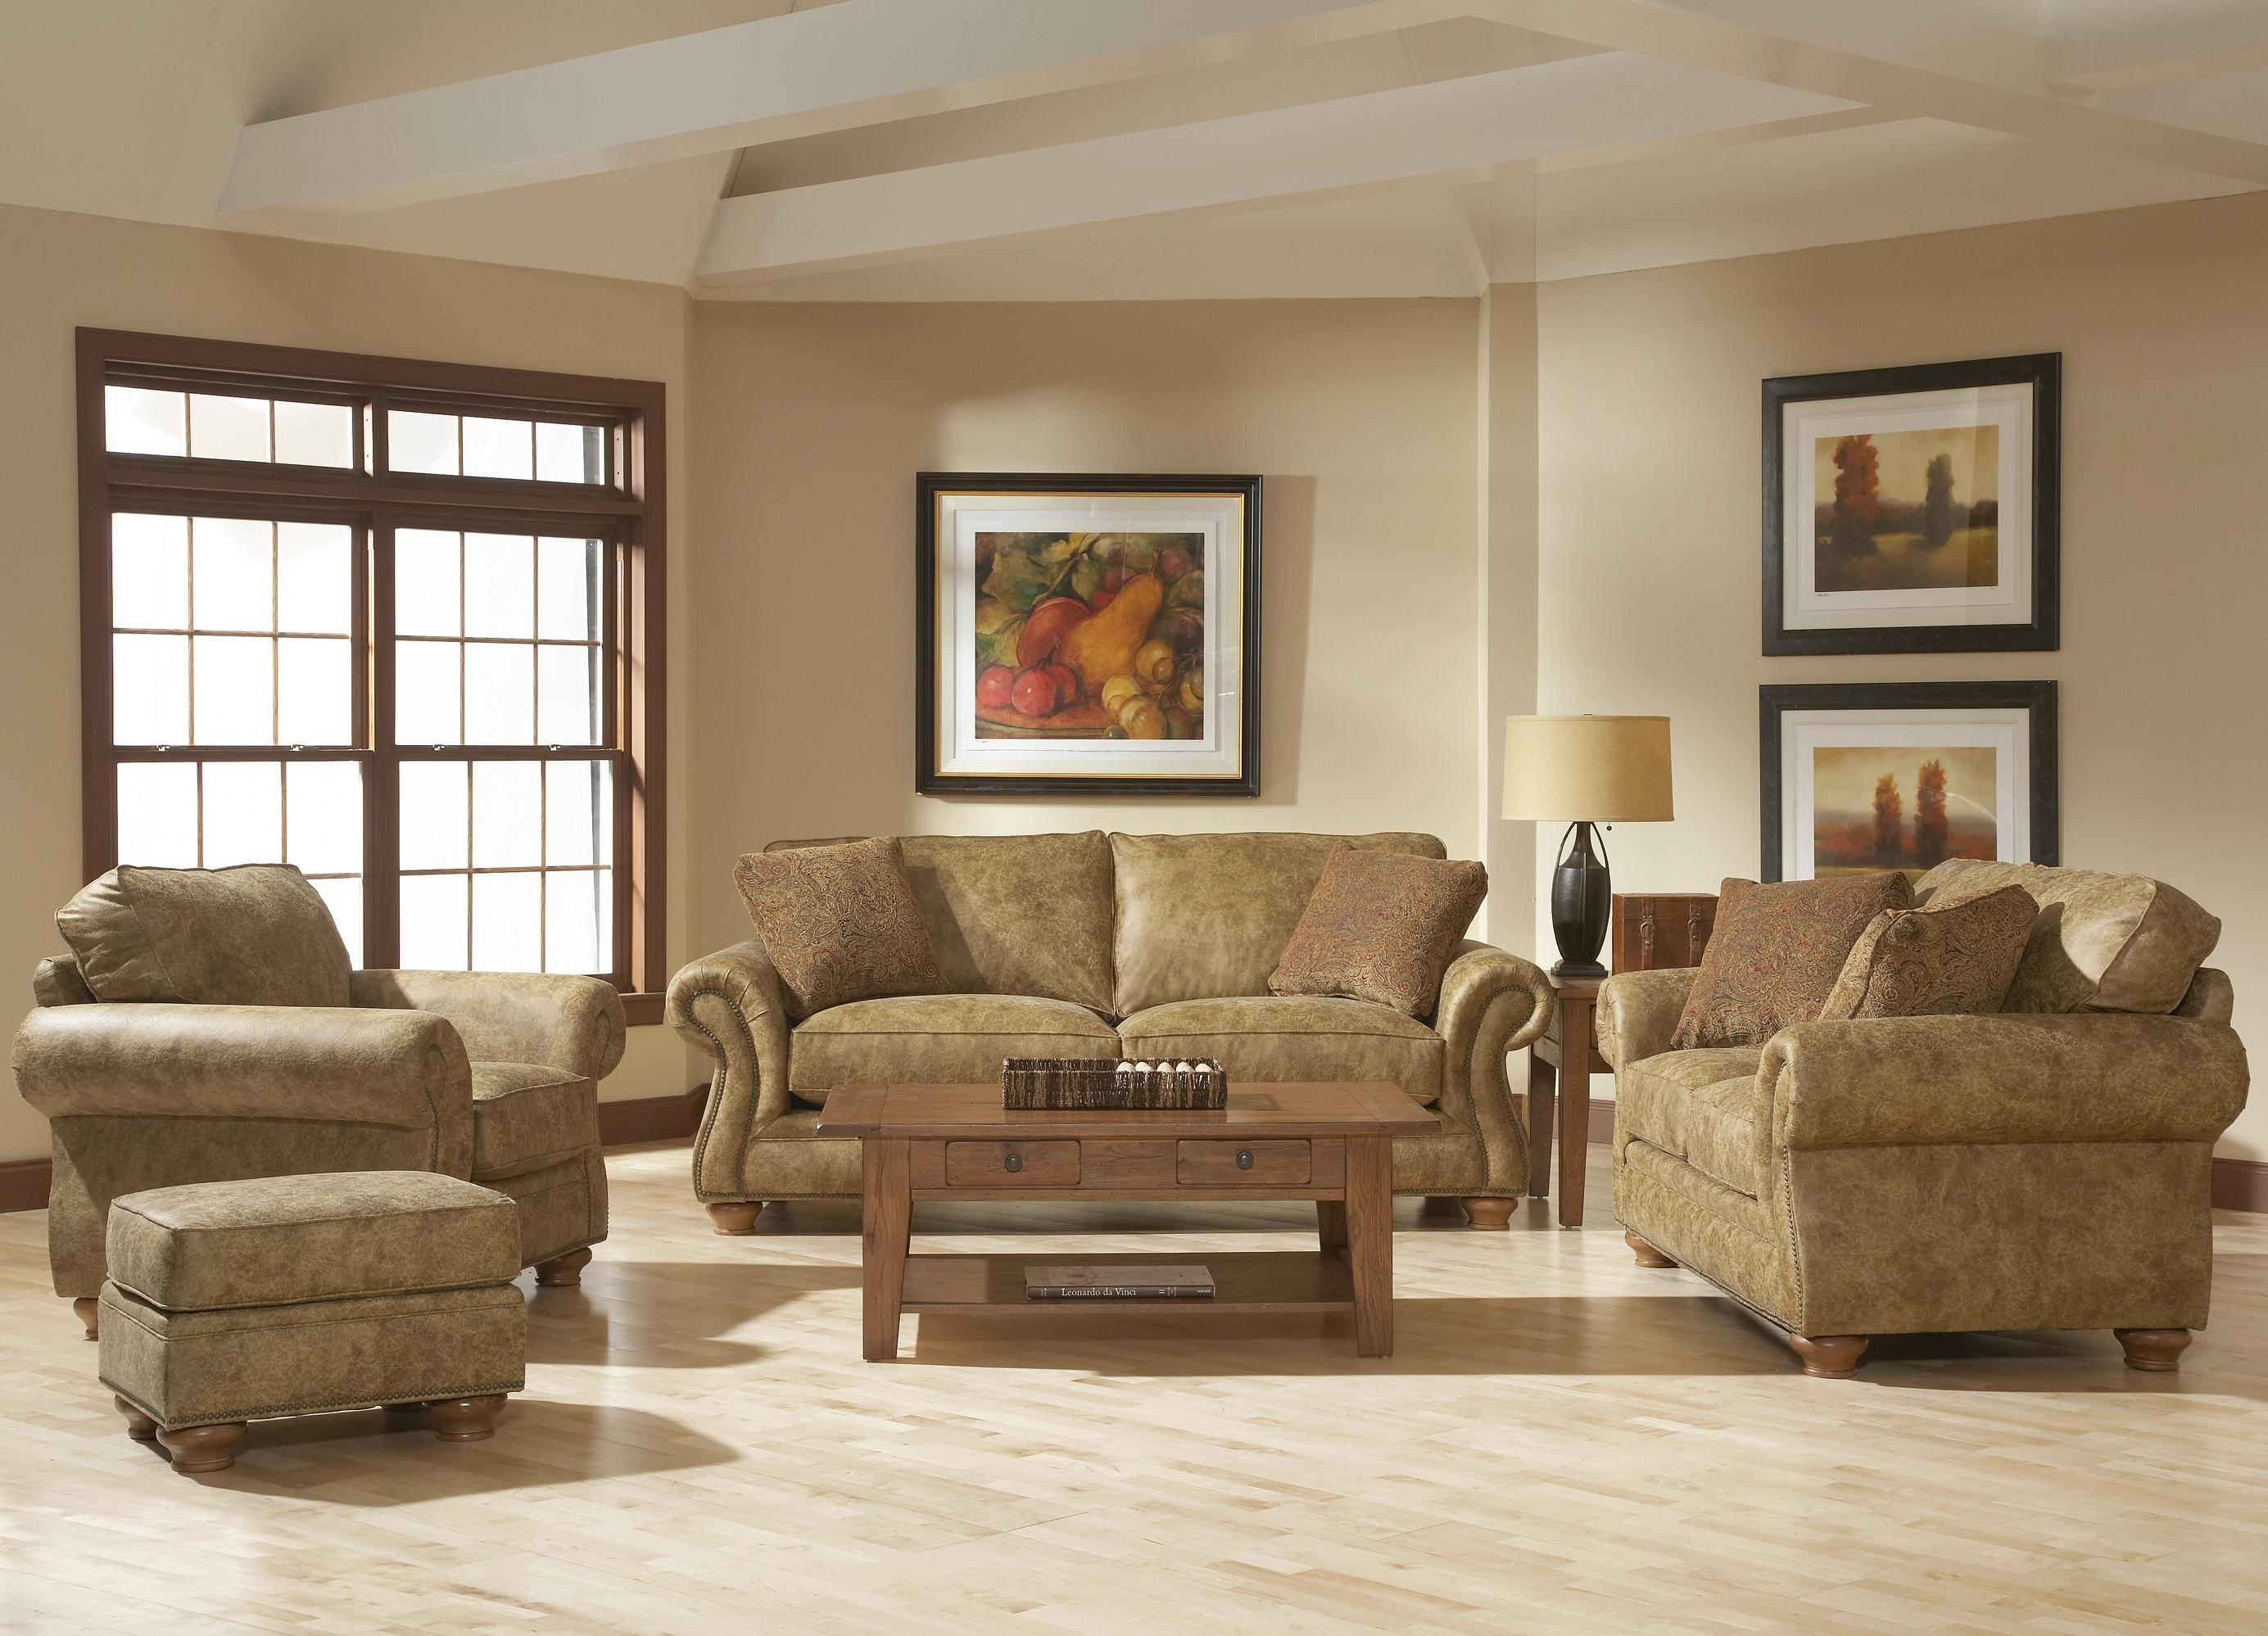 room and board sofa reviews springs uk 20 photos broyhill mckinney sofas ideas